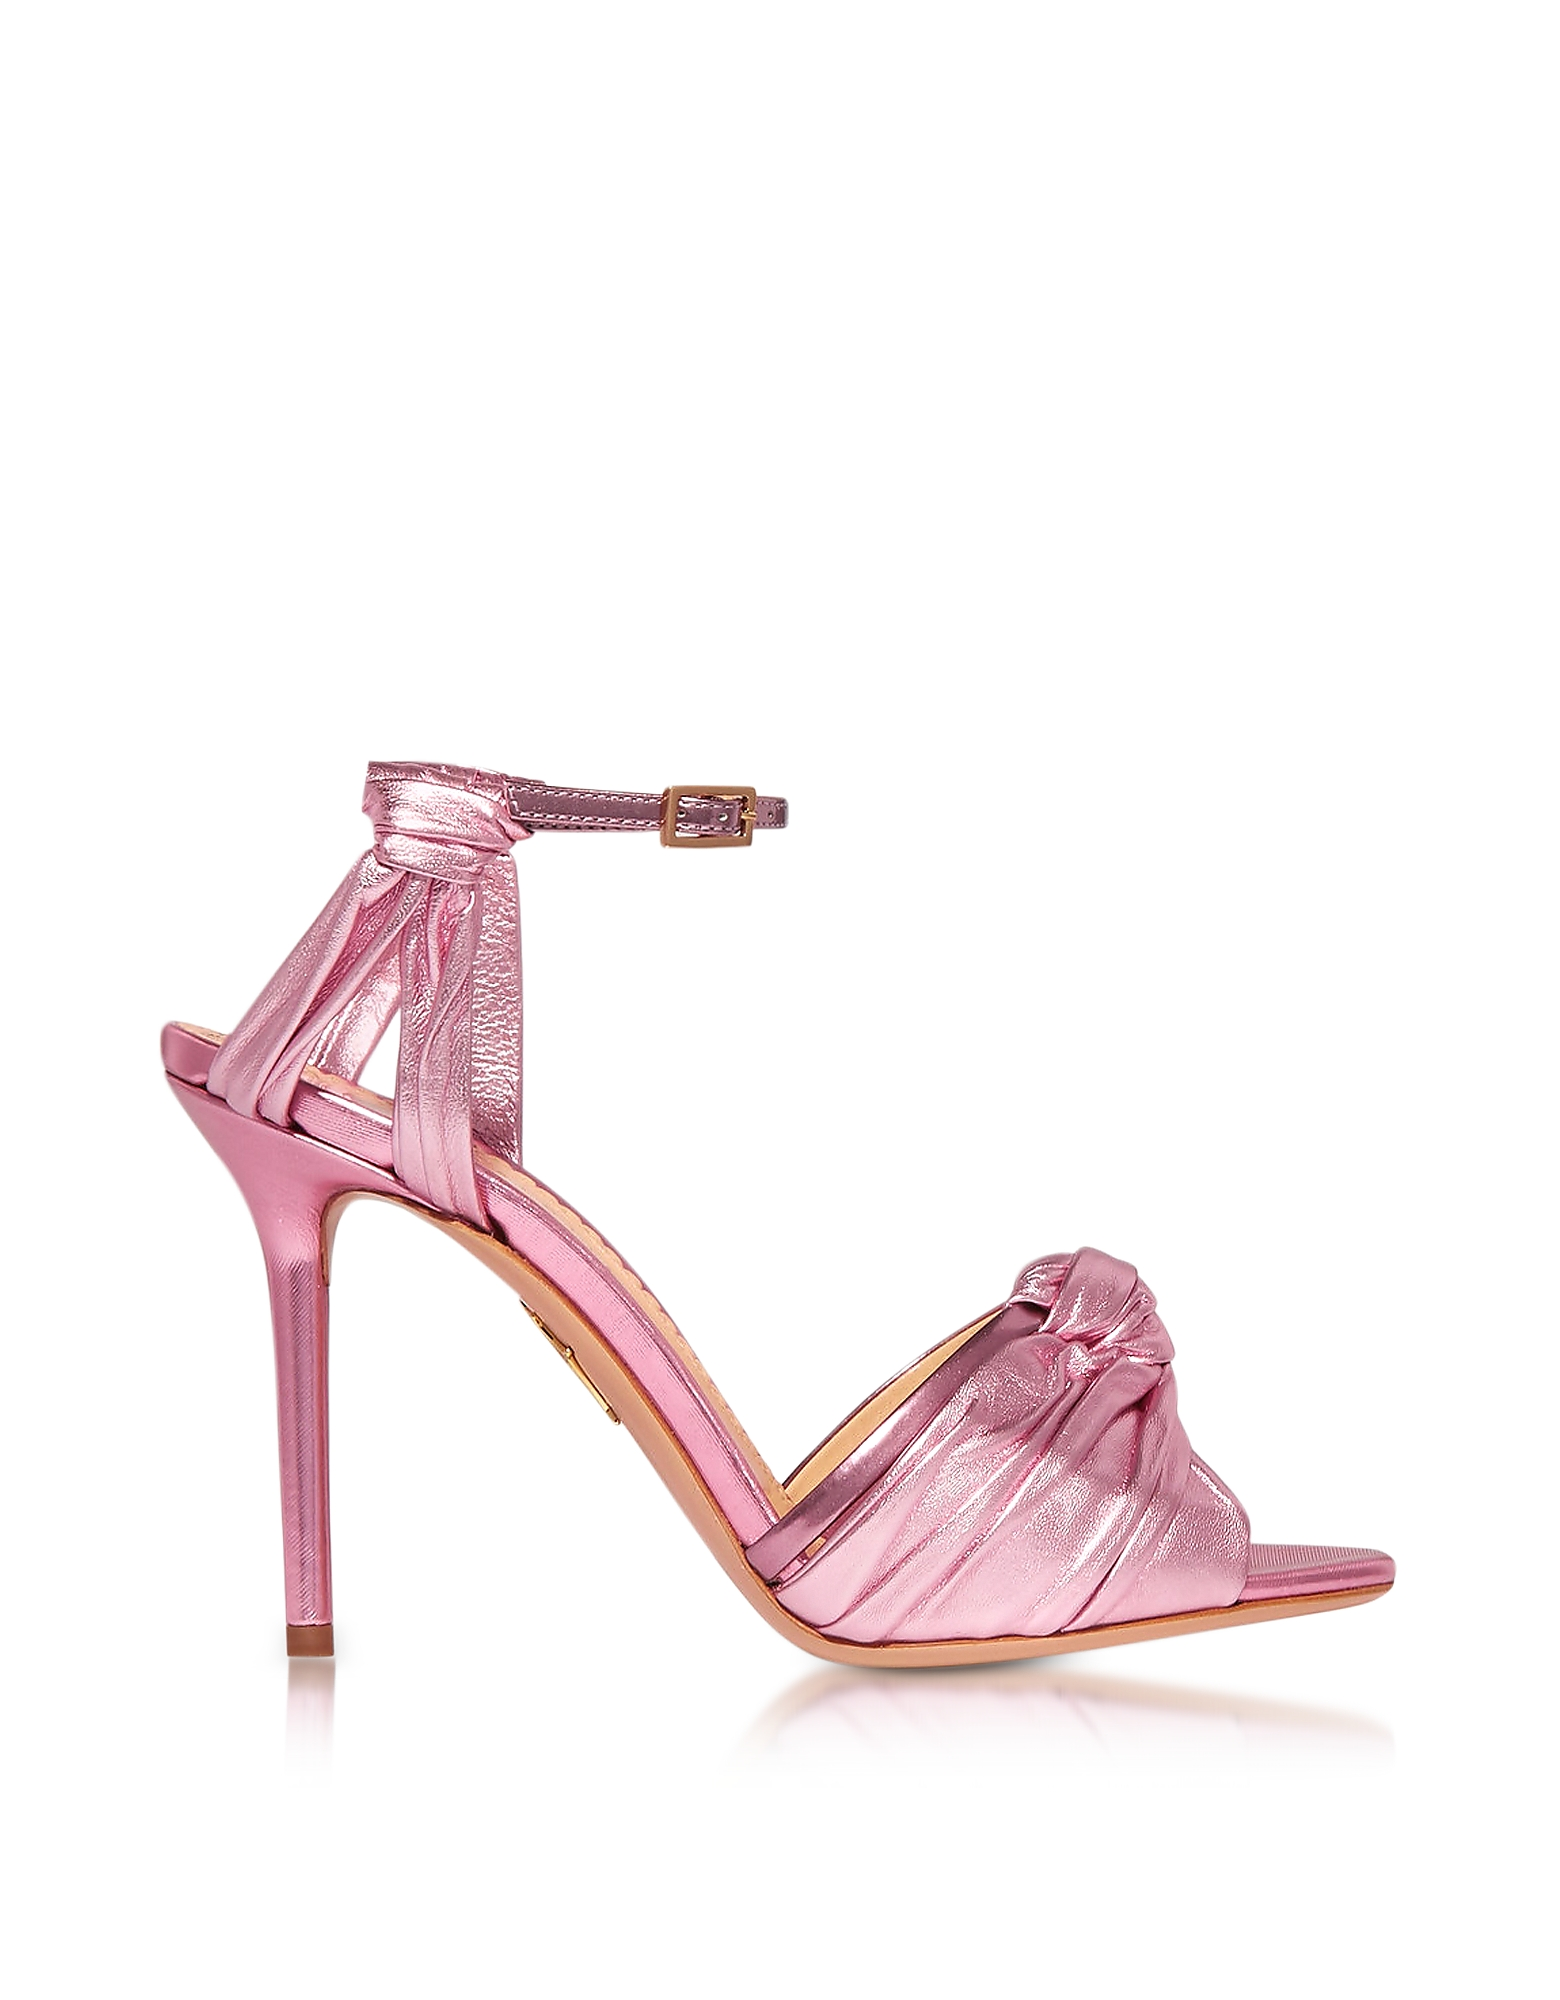 Charlotte Olympia Shoes, Broadway Party Pink Metallic Nappa Sandal